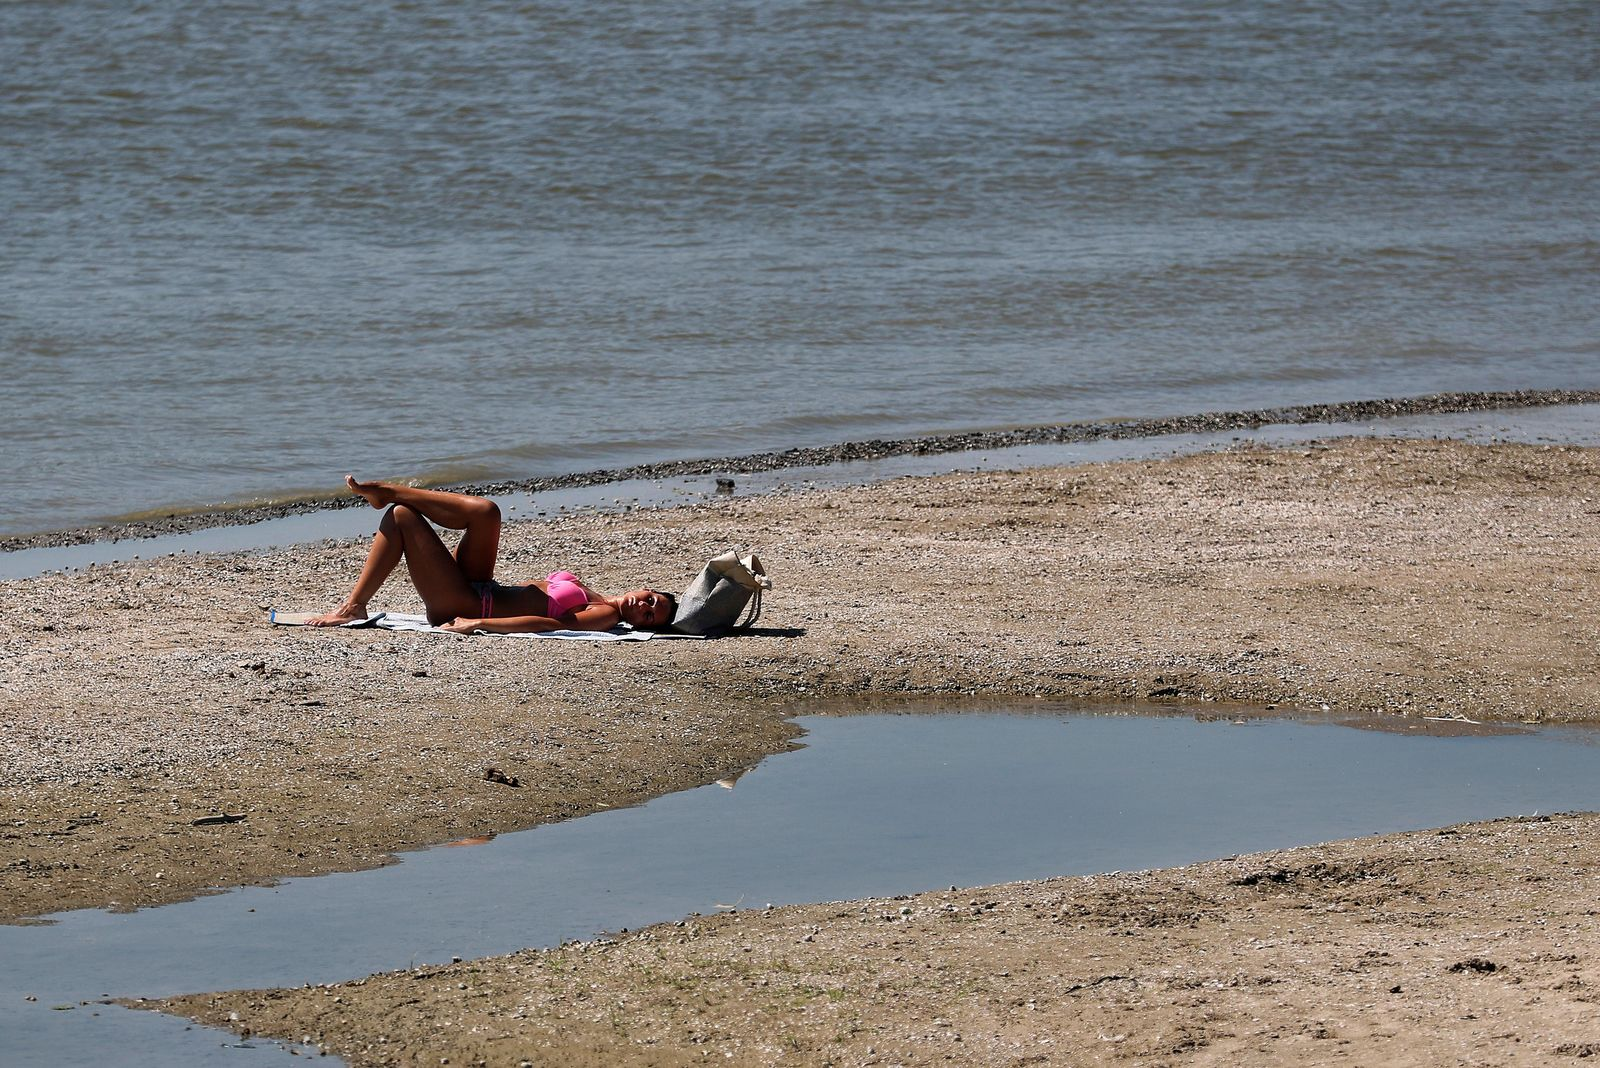 A woman sunbathes on the sandbank on Danube river in Belgrade, Serbia, Monday, Aug. 12, 2019. Hot weather has set in with temperatures rising up to 37 Celsius (98,6 Fahrenheit) in Serbia. (AP Photo/Darko Vojinovic)